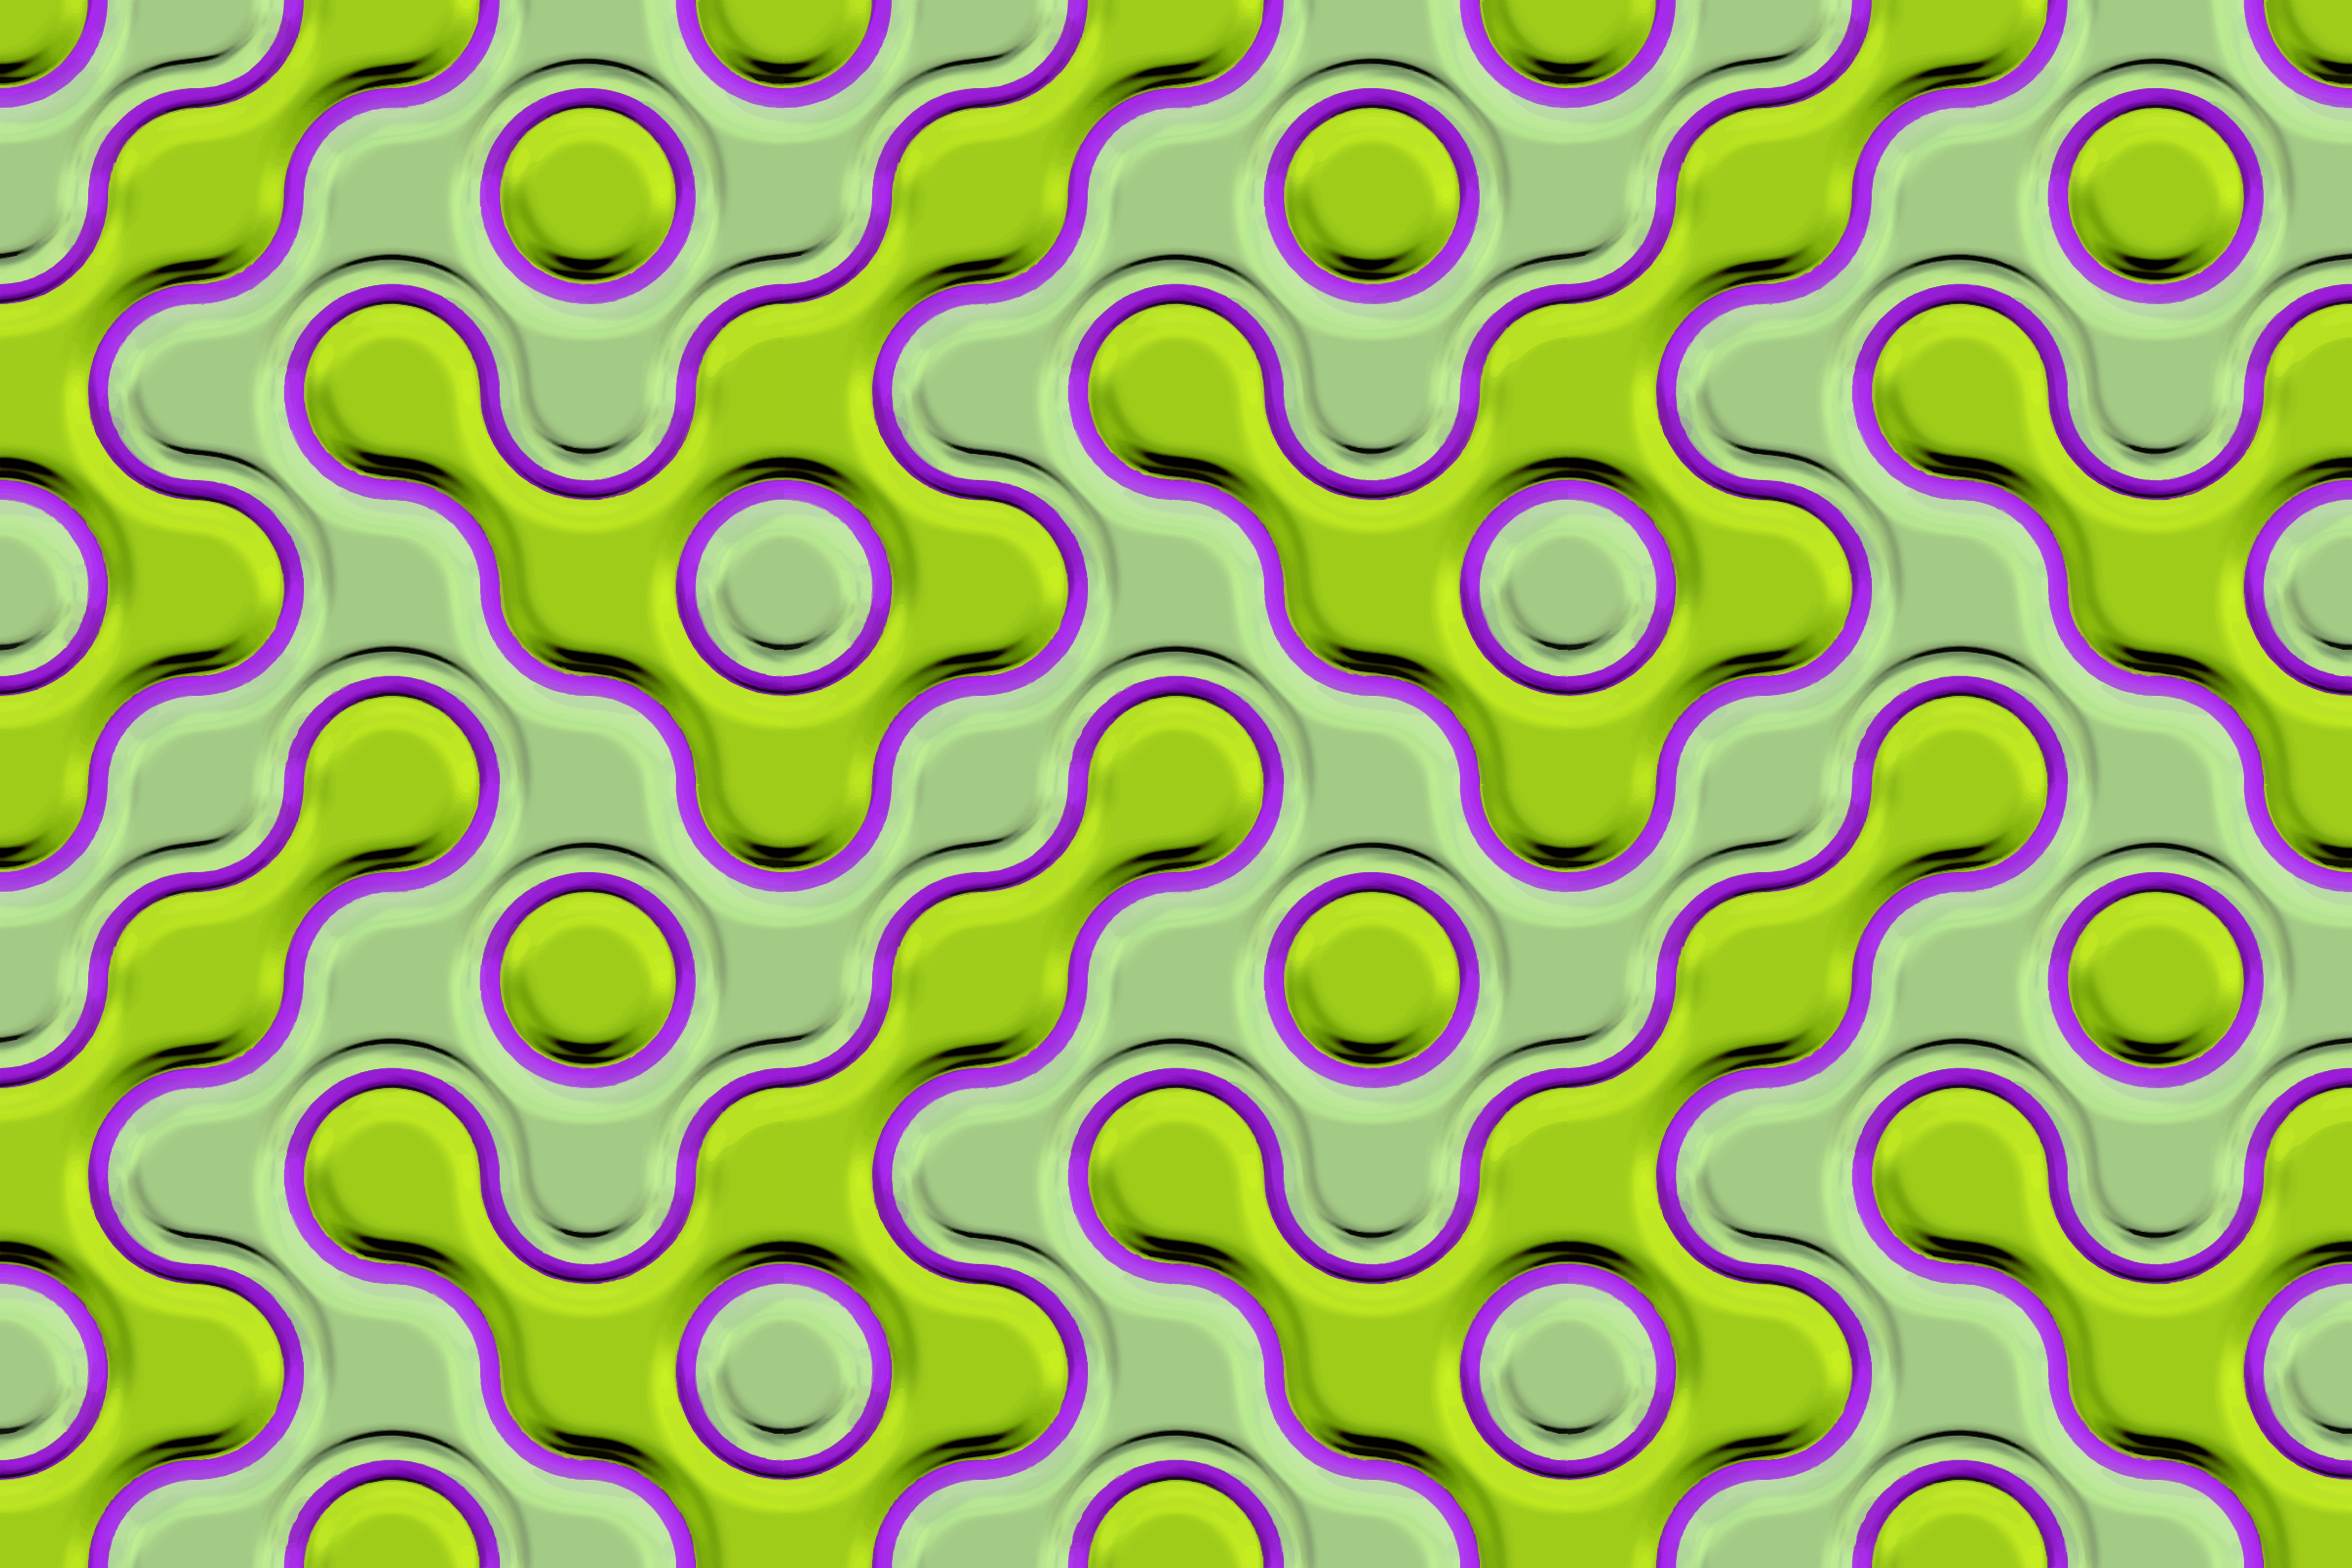 Background pattern 259 (colour 4) by Firkin